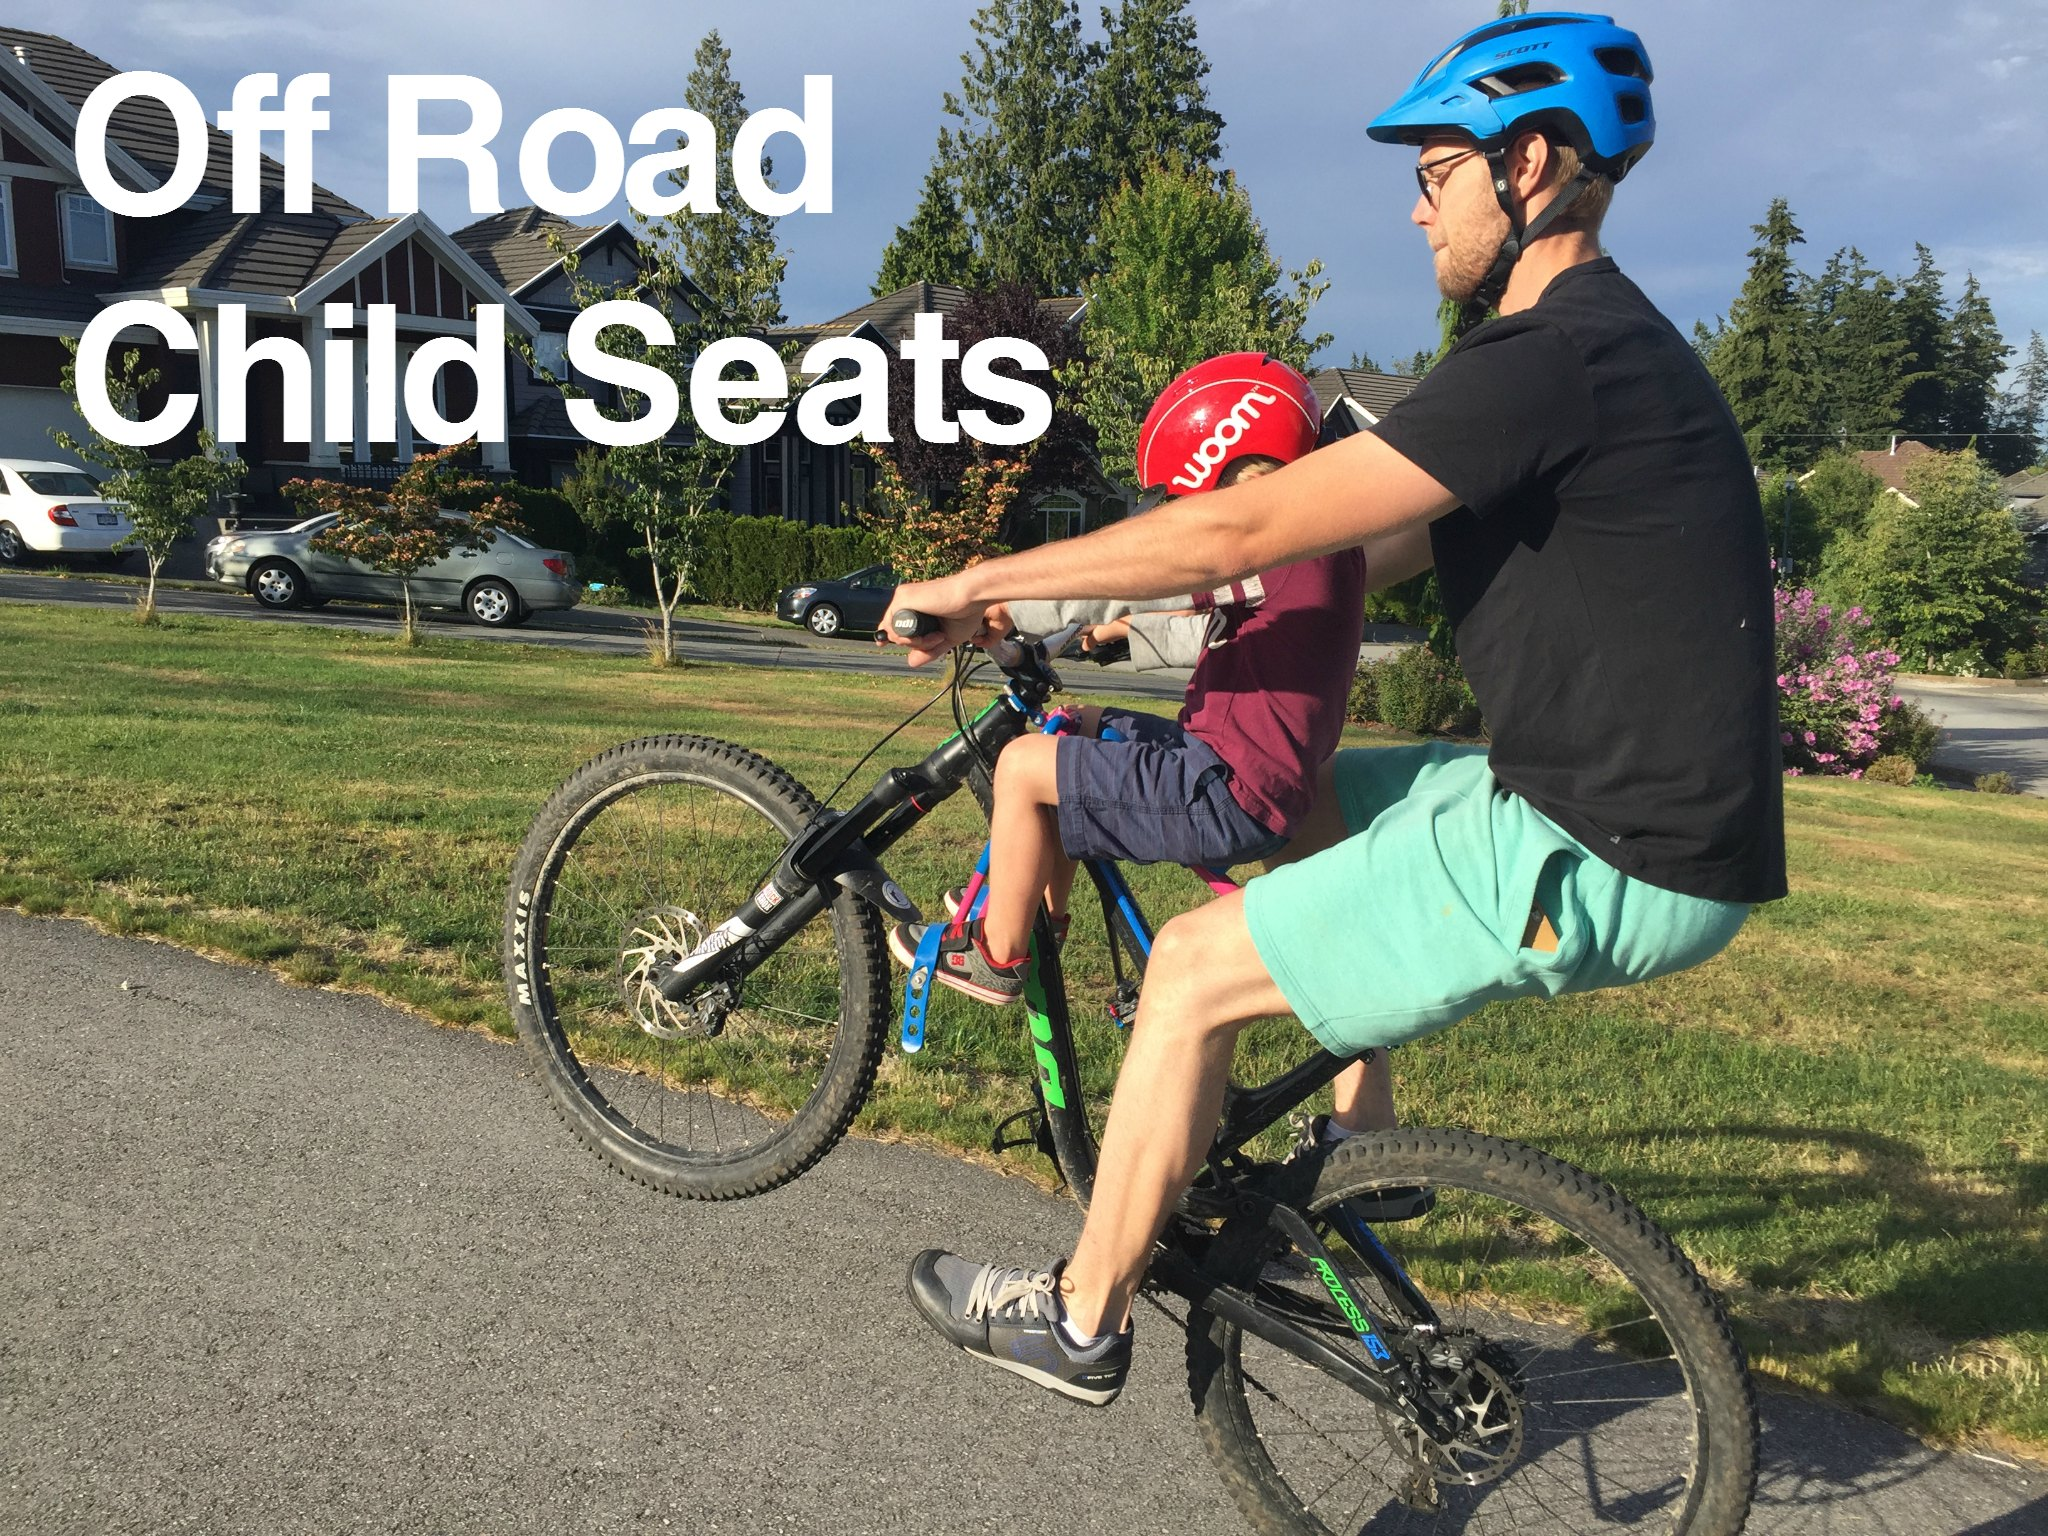 Off Road Child Seats The Bike Dads